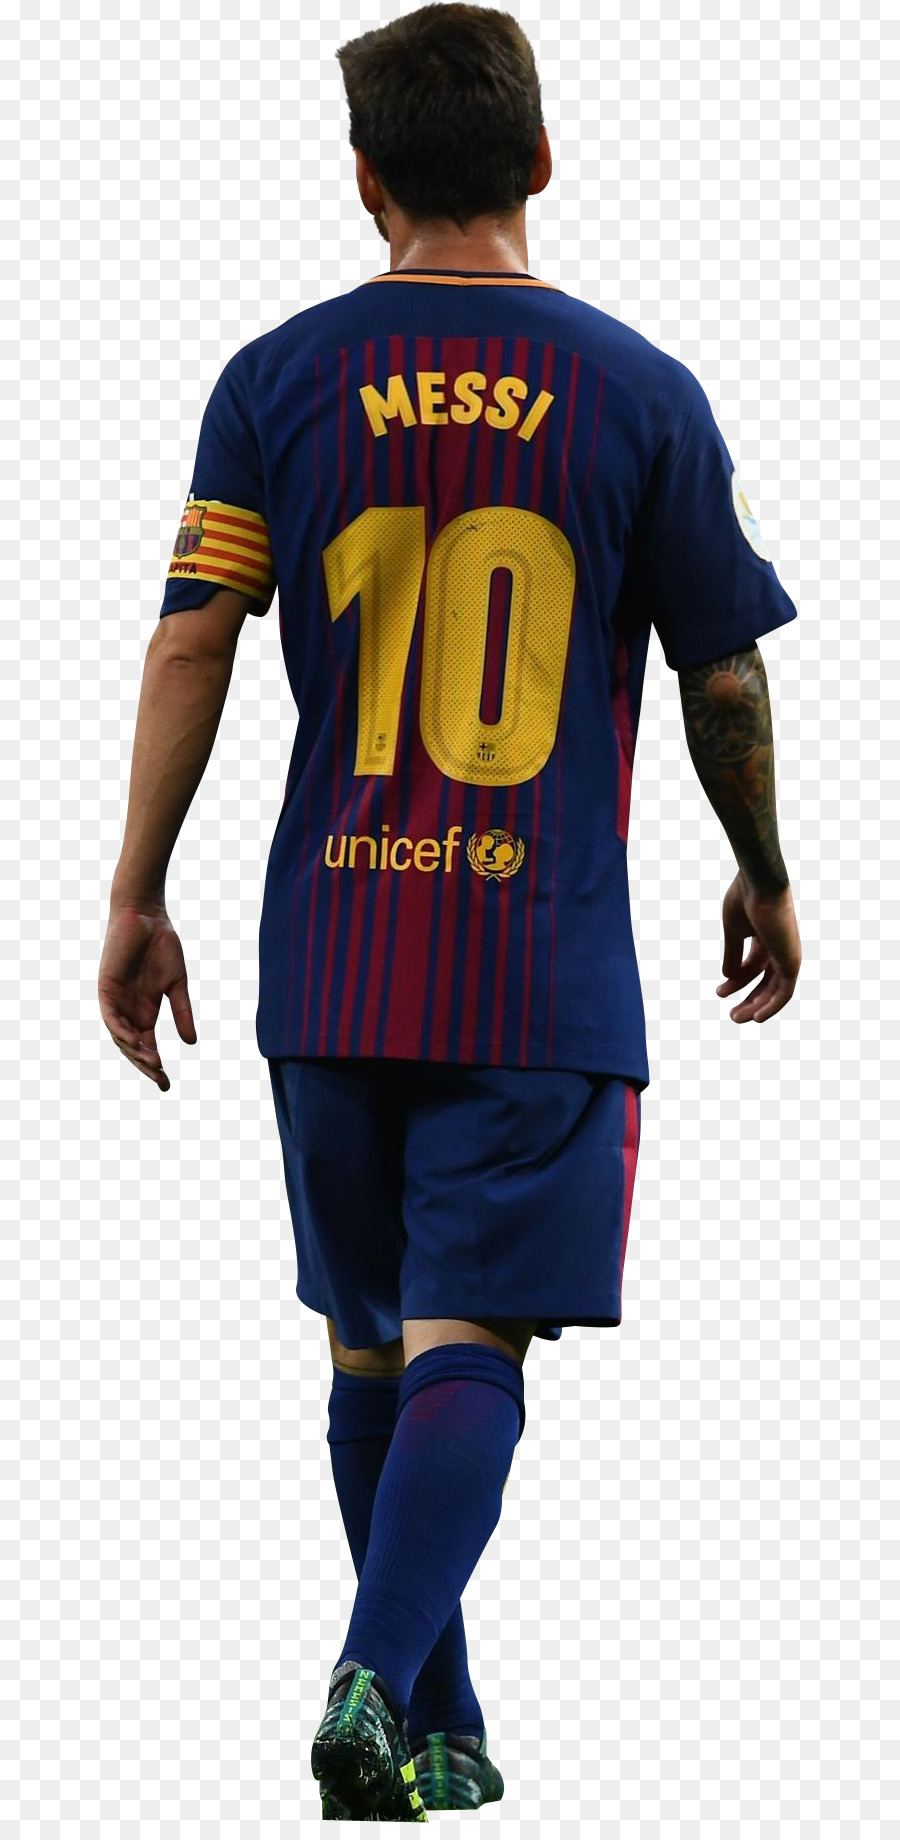 2dff0dfbef4 0 Fc Barcelona Jersey - Querciacb